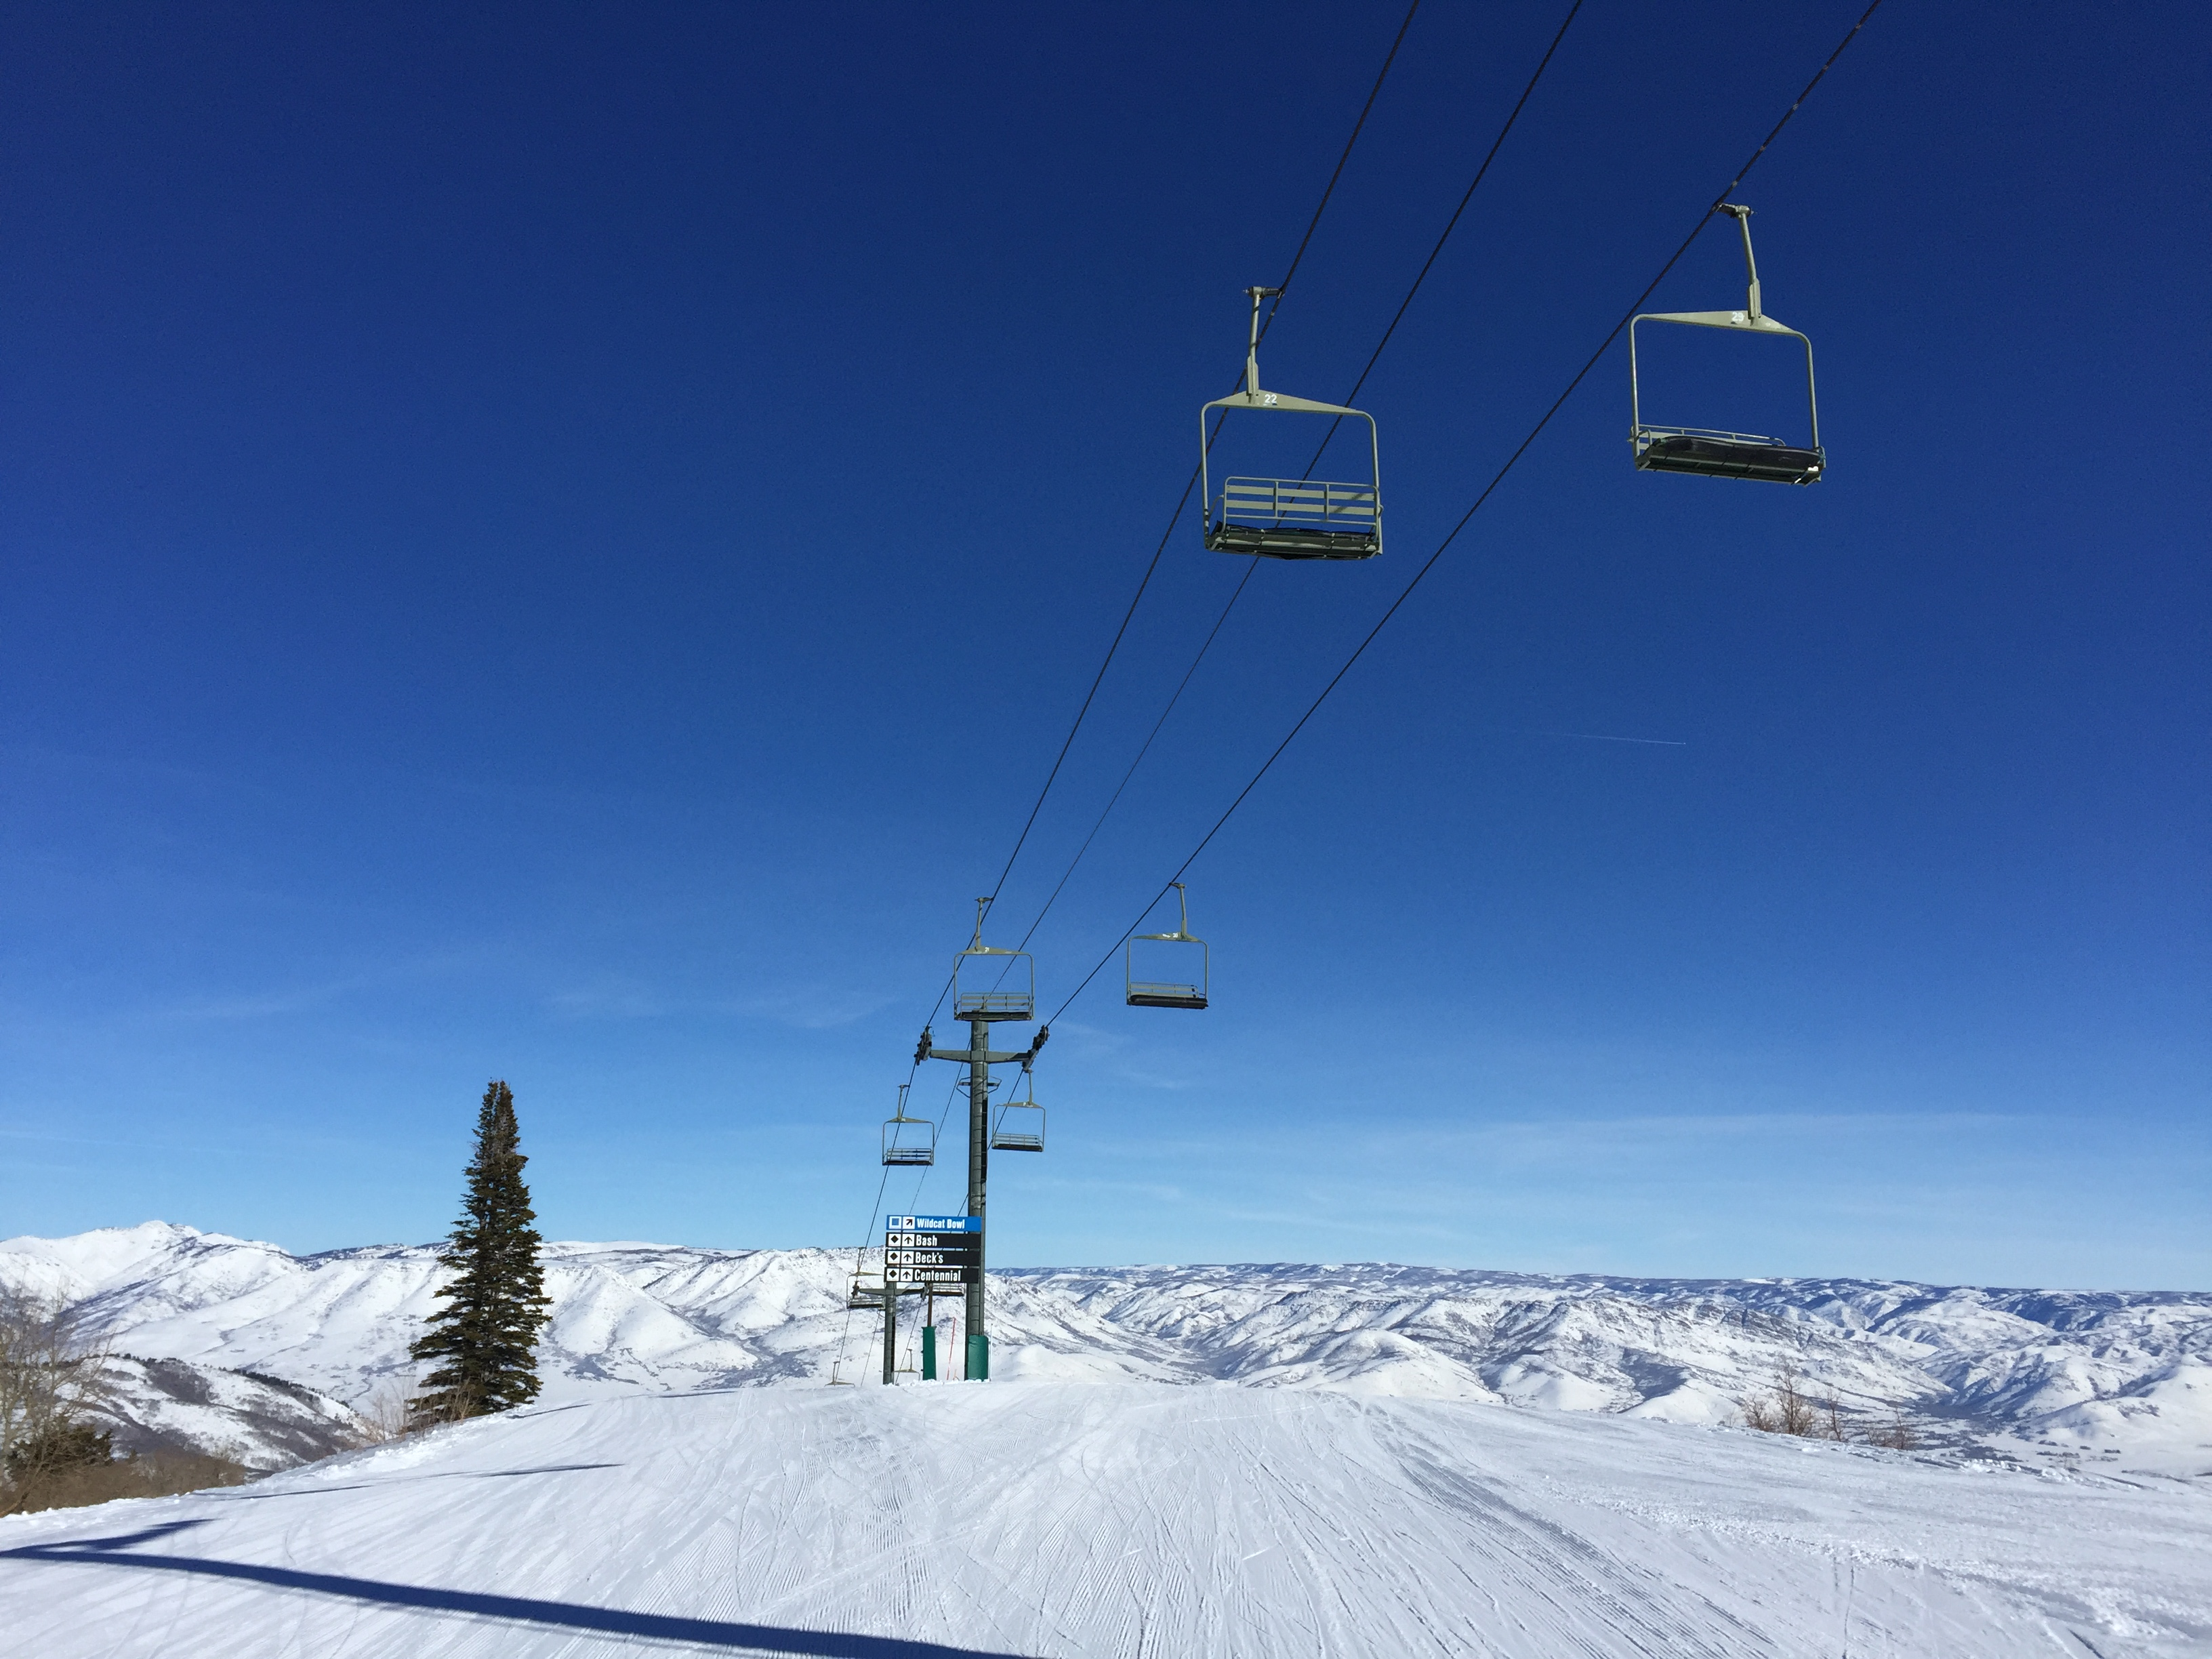 Snowbasin Resort Announces New High Speed Wildcat Chairlift for 2017 ...